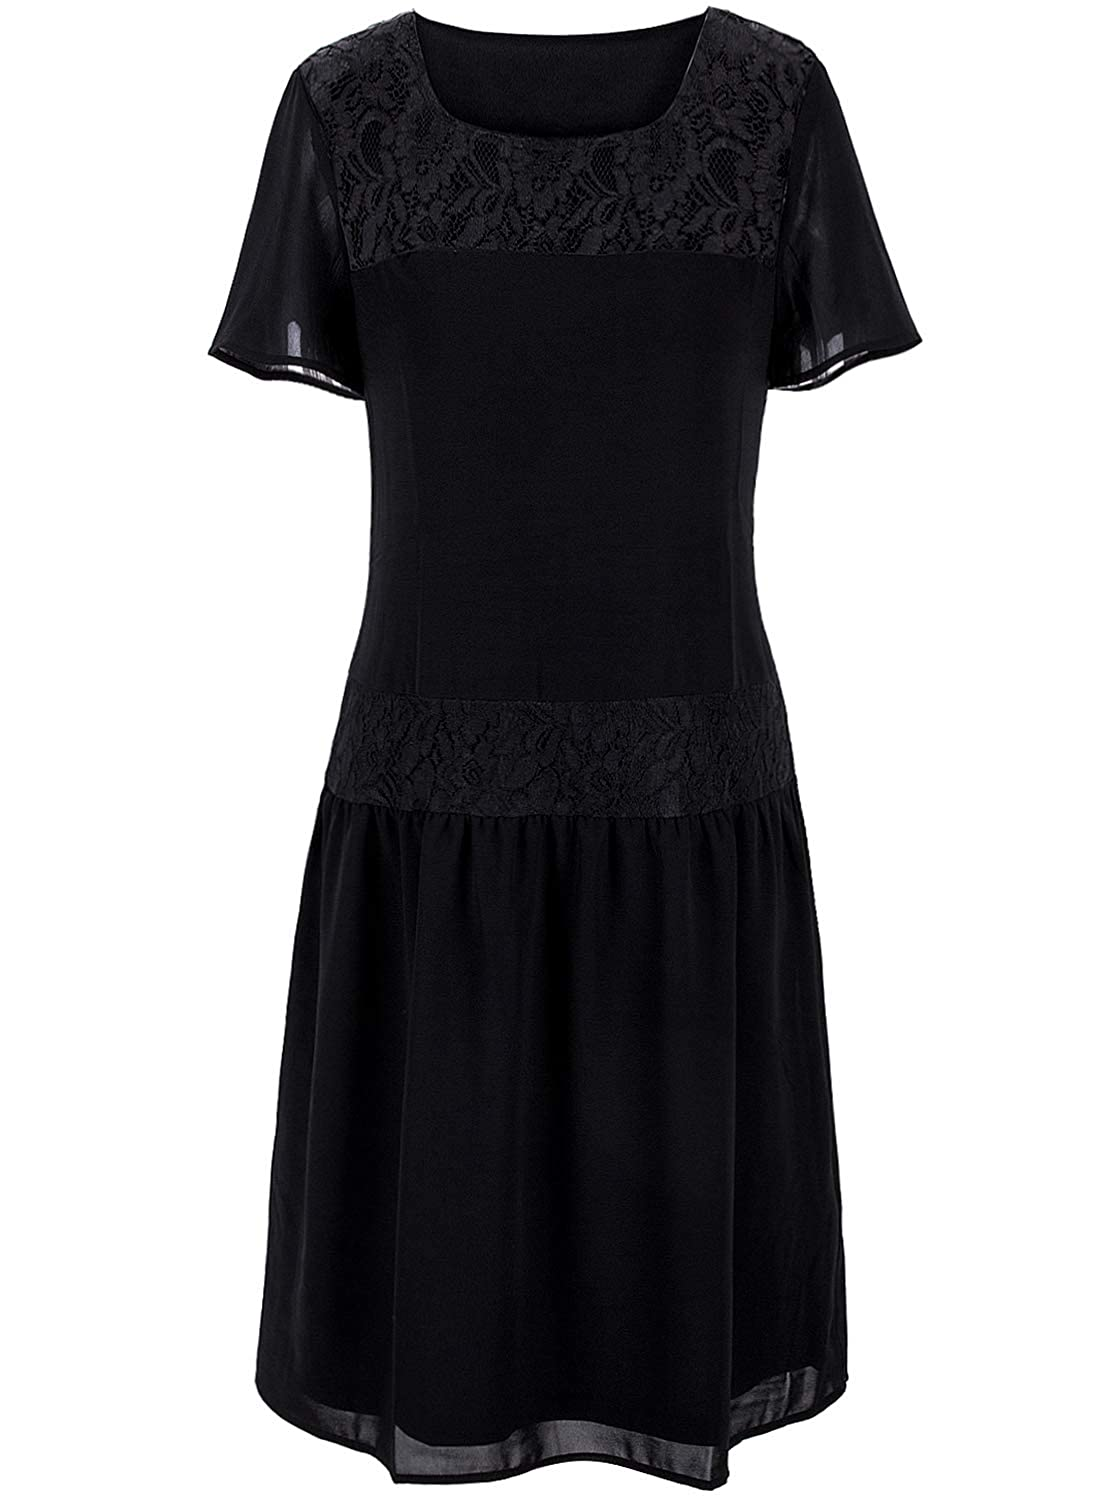 Great Gatsby Dress – Great Gatsby Dresses for Sale VIJIV 1920s Inspired Flapper Dress High Tea Lace Short Sleeves Drop Waist Dress $34.99 AT vintagedancer.com